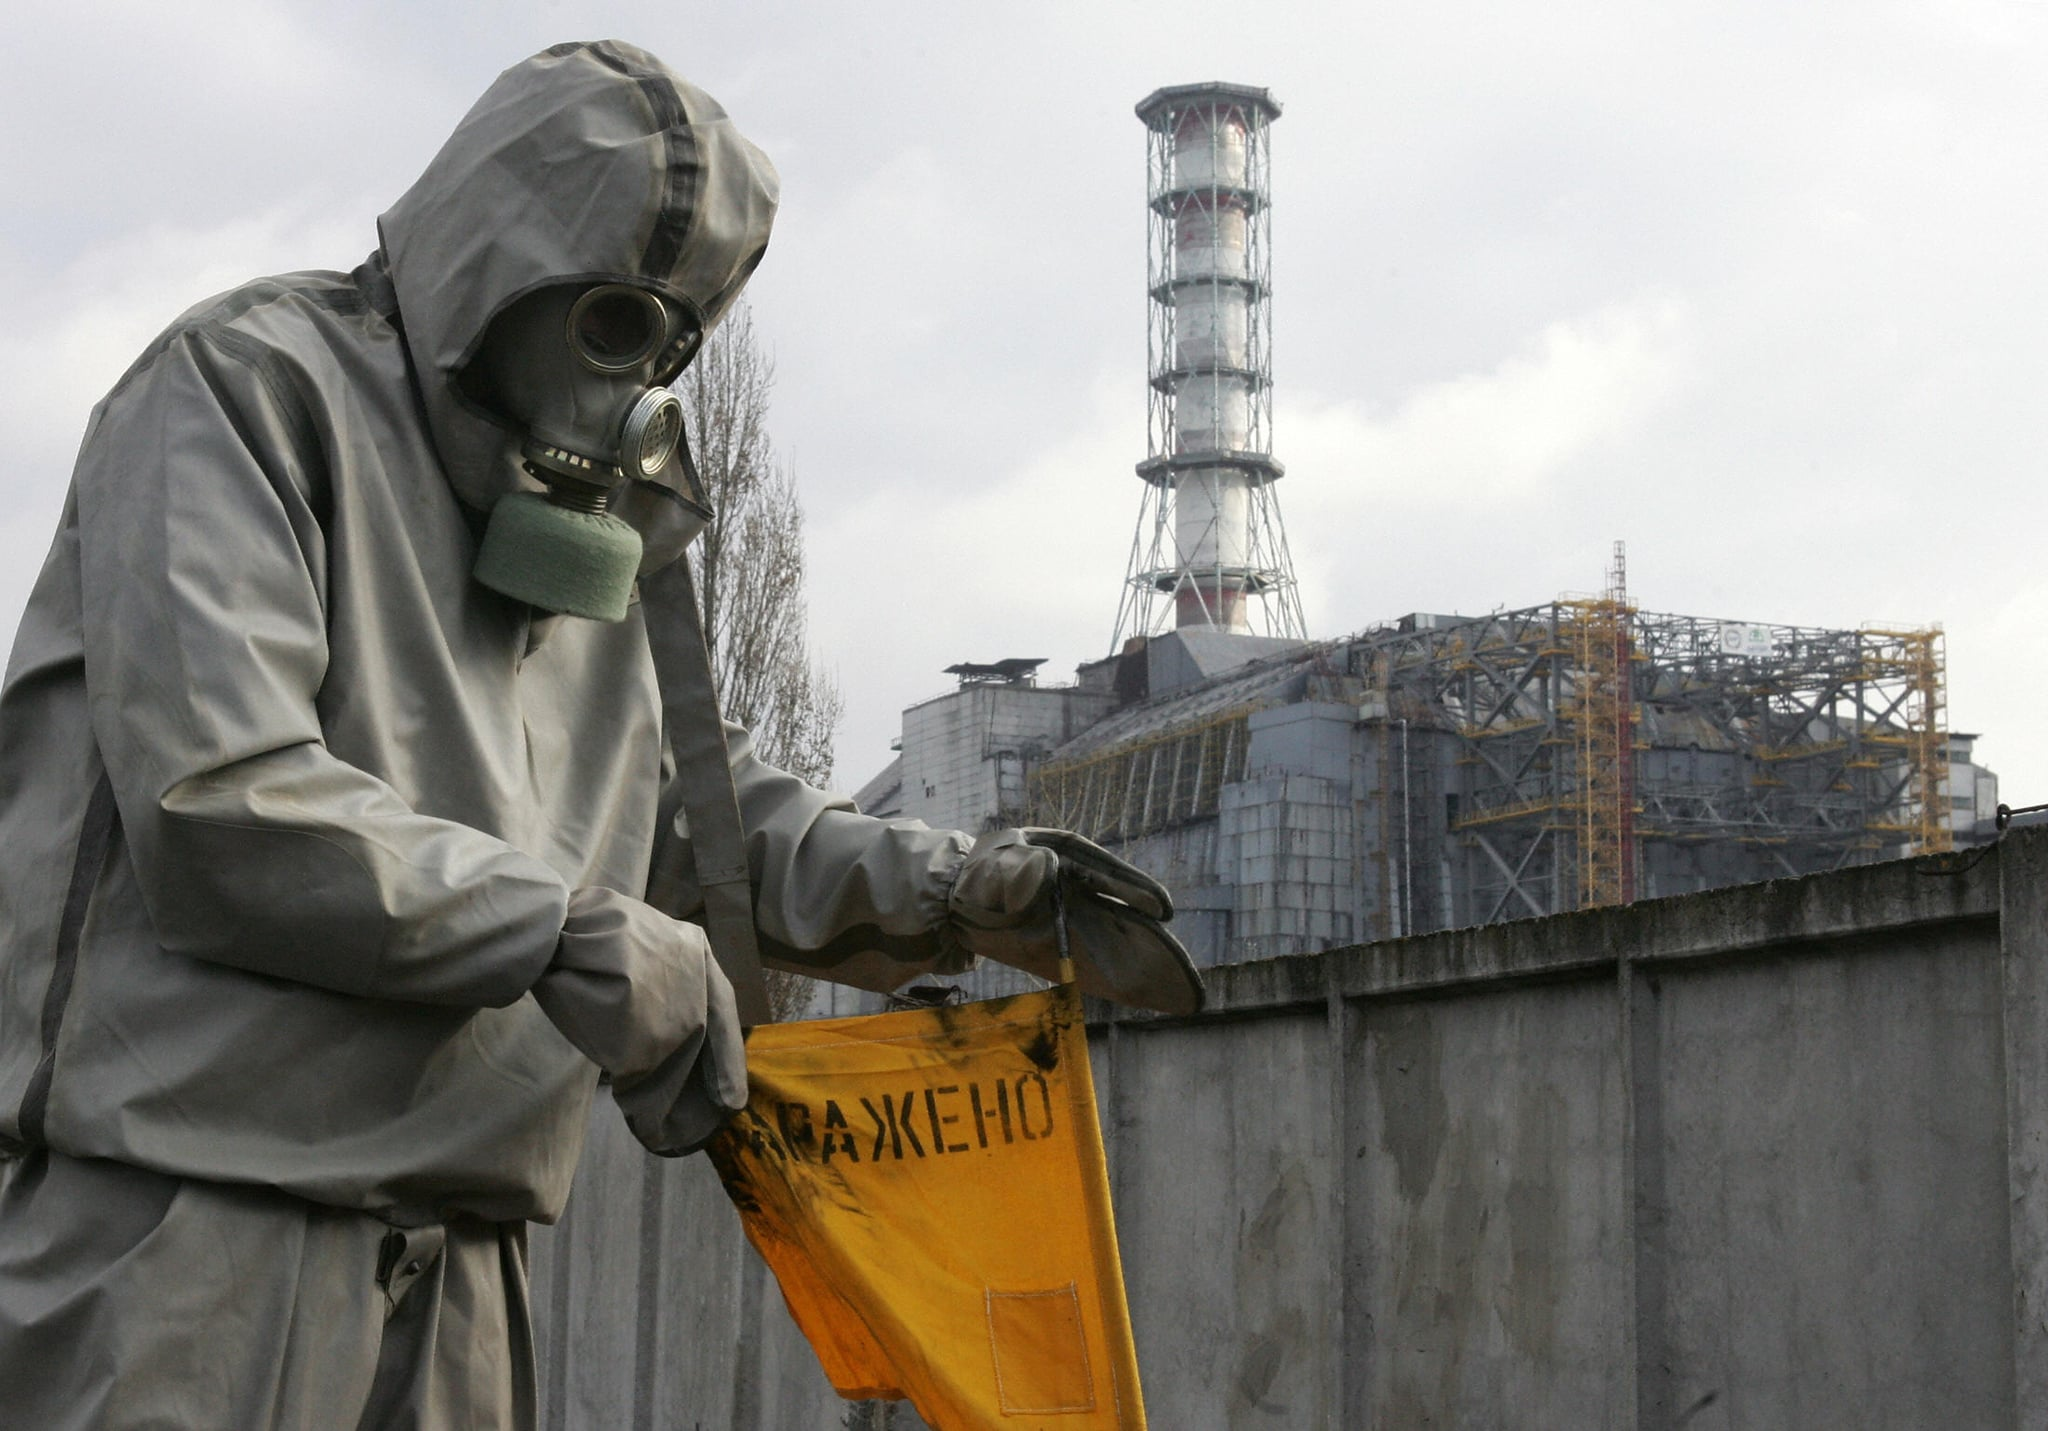 Chernobyl, UKRAINE:  A rescue worker sets flag signalling radioactivity in front of Chernobyl nuclear power plant during a drill organised by Ukraine's Emergency Ministry 08 November 2006. Employees and rescue workers improved their reactivity in case of a collapse of the sarcophagus covering the destroyed 4th power block. AFP PHOTO/ SERGEI SUPINSKY  (Photo credit should read SERGEI SUPINSKY/AFP/Getty Images)